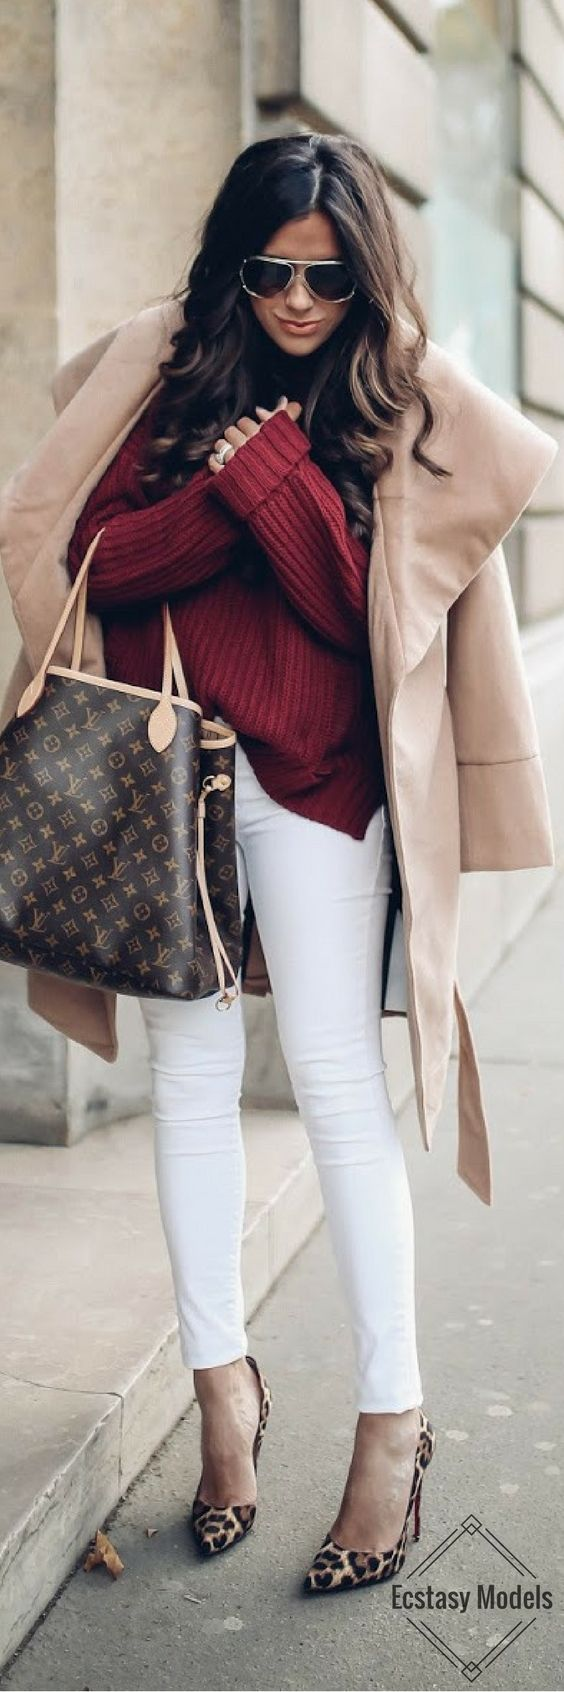 BORDEAUX & CAMEL FOR FALL // Fashion Look by Emily Ann Gemma